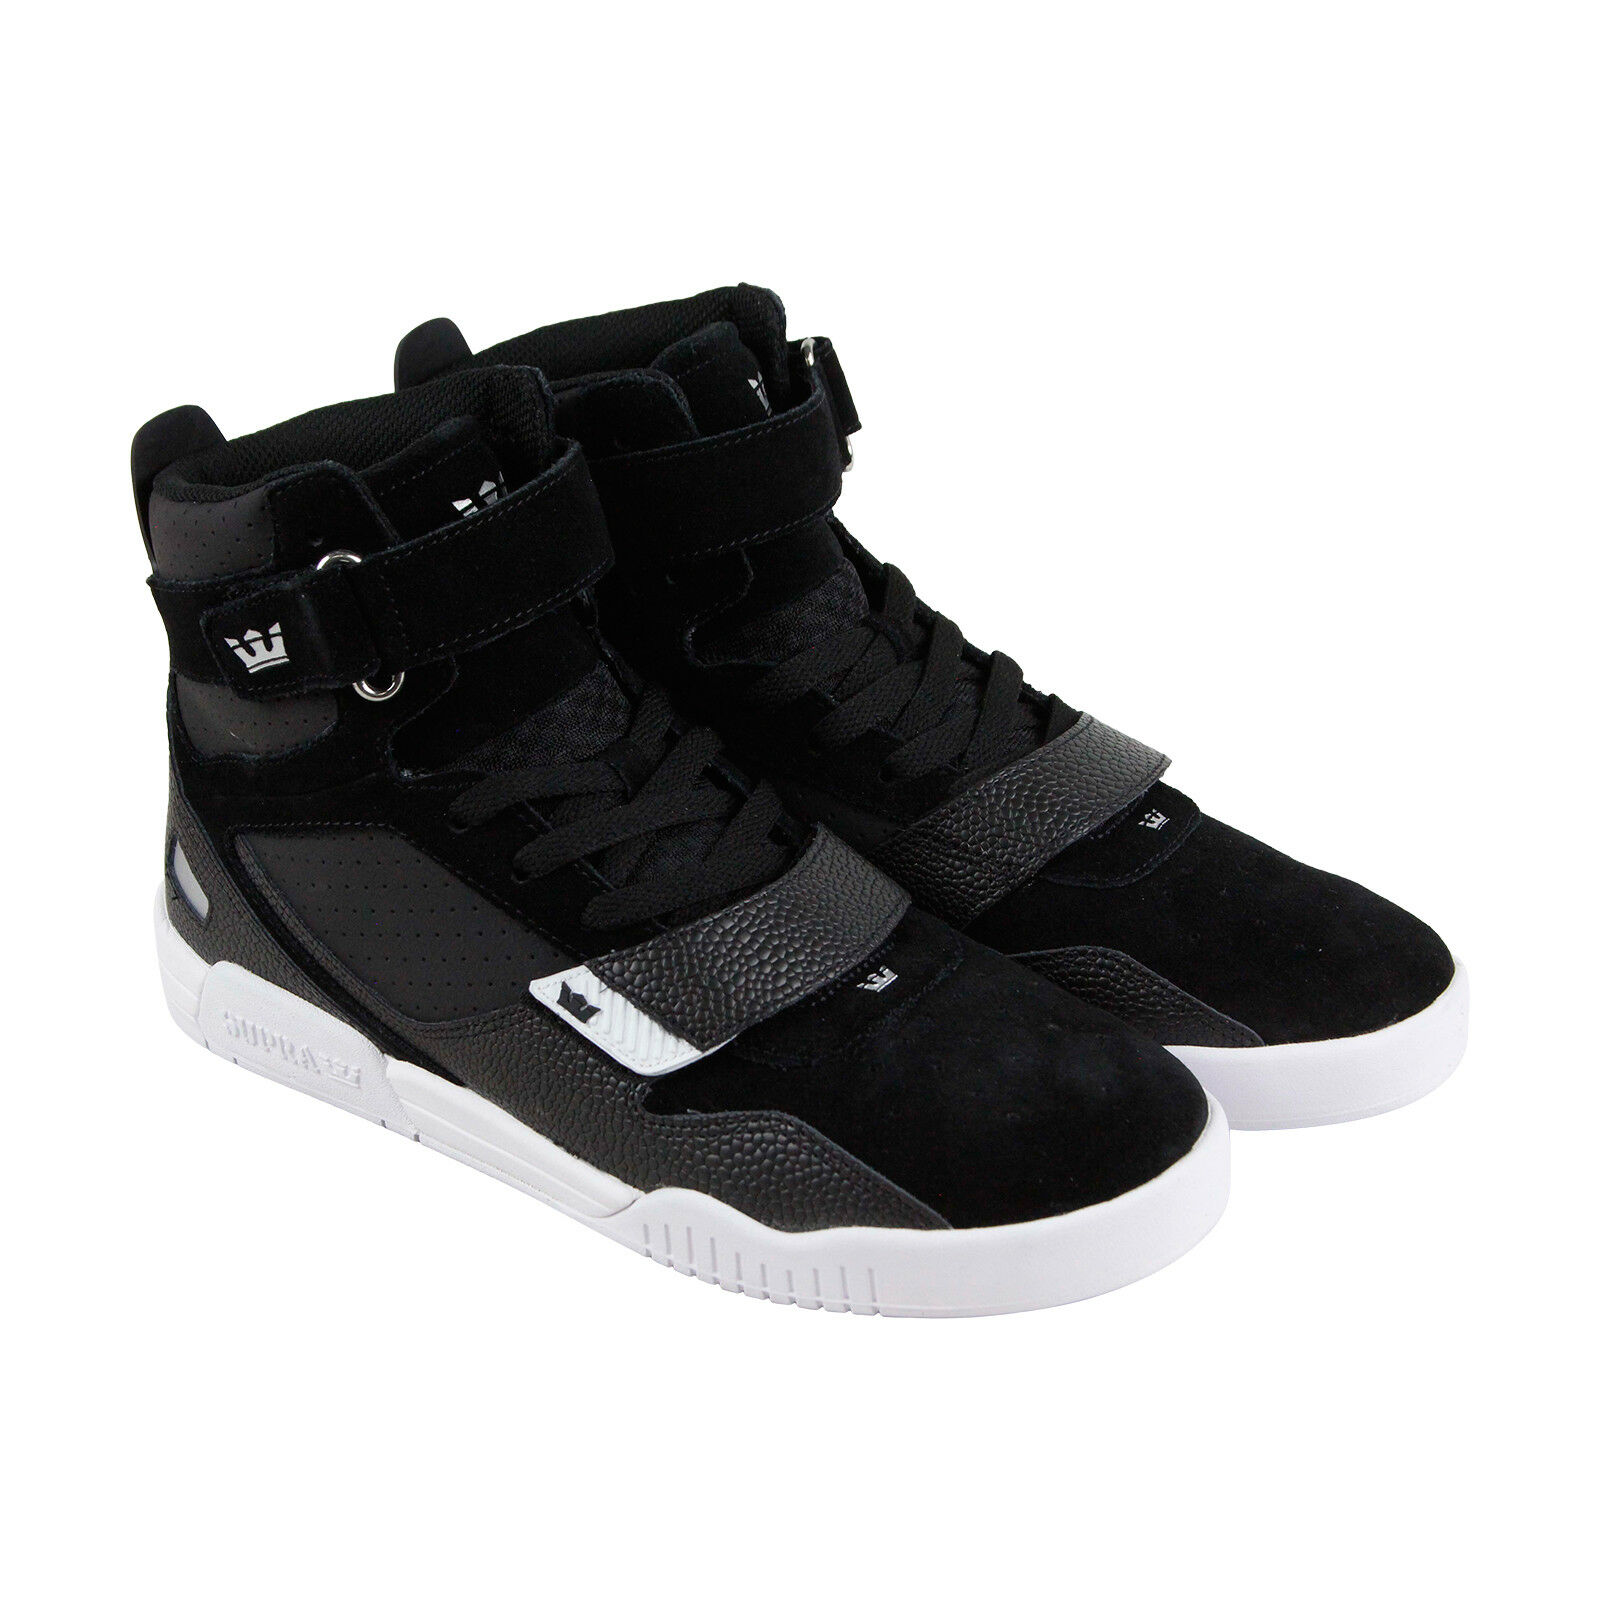 Supra Breaker Mens Black Suede High Top Strap Sneakers shoes